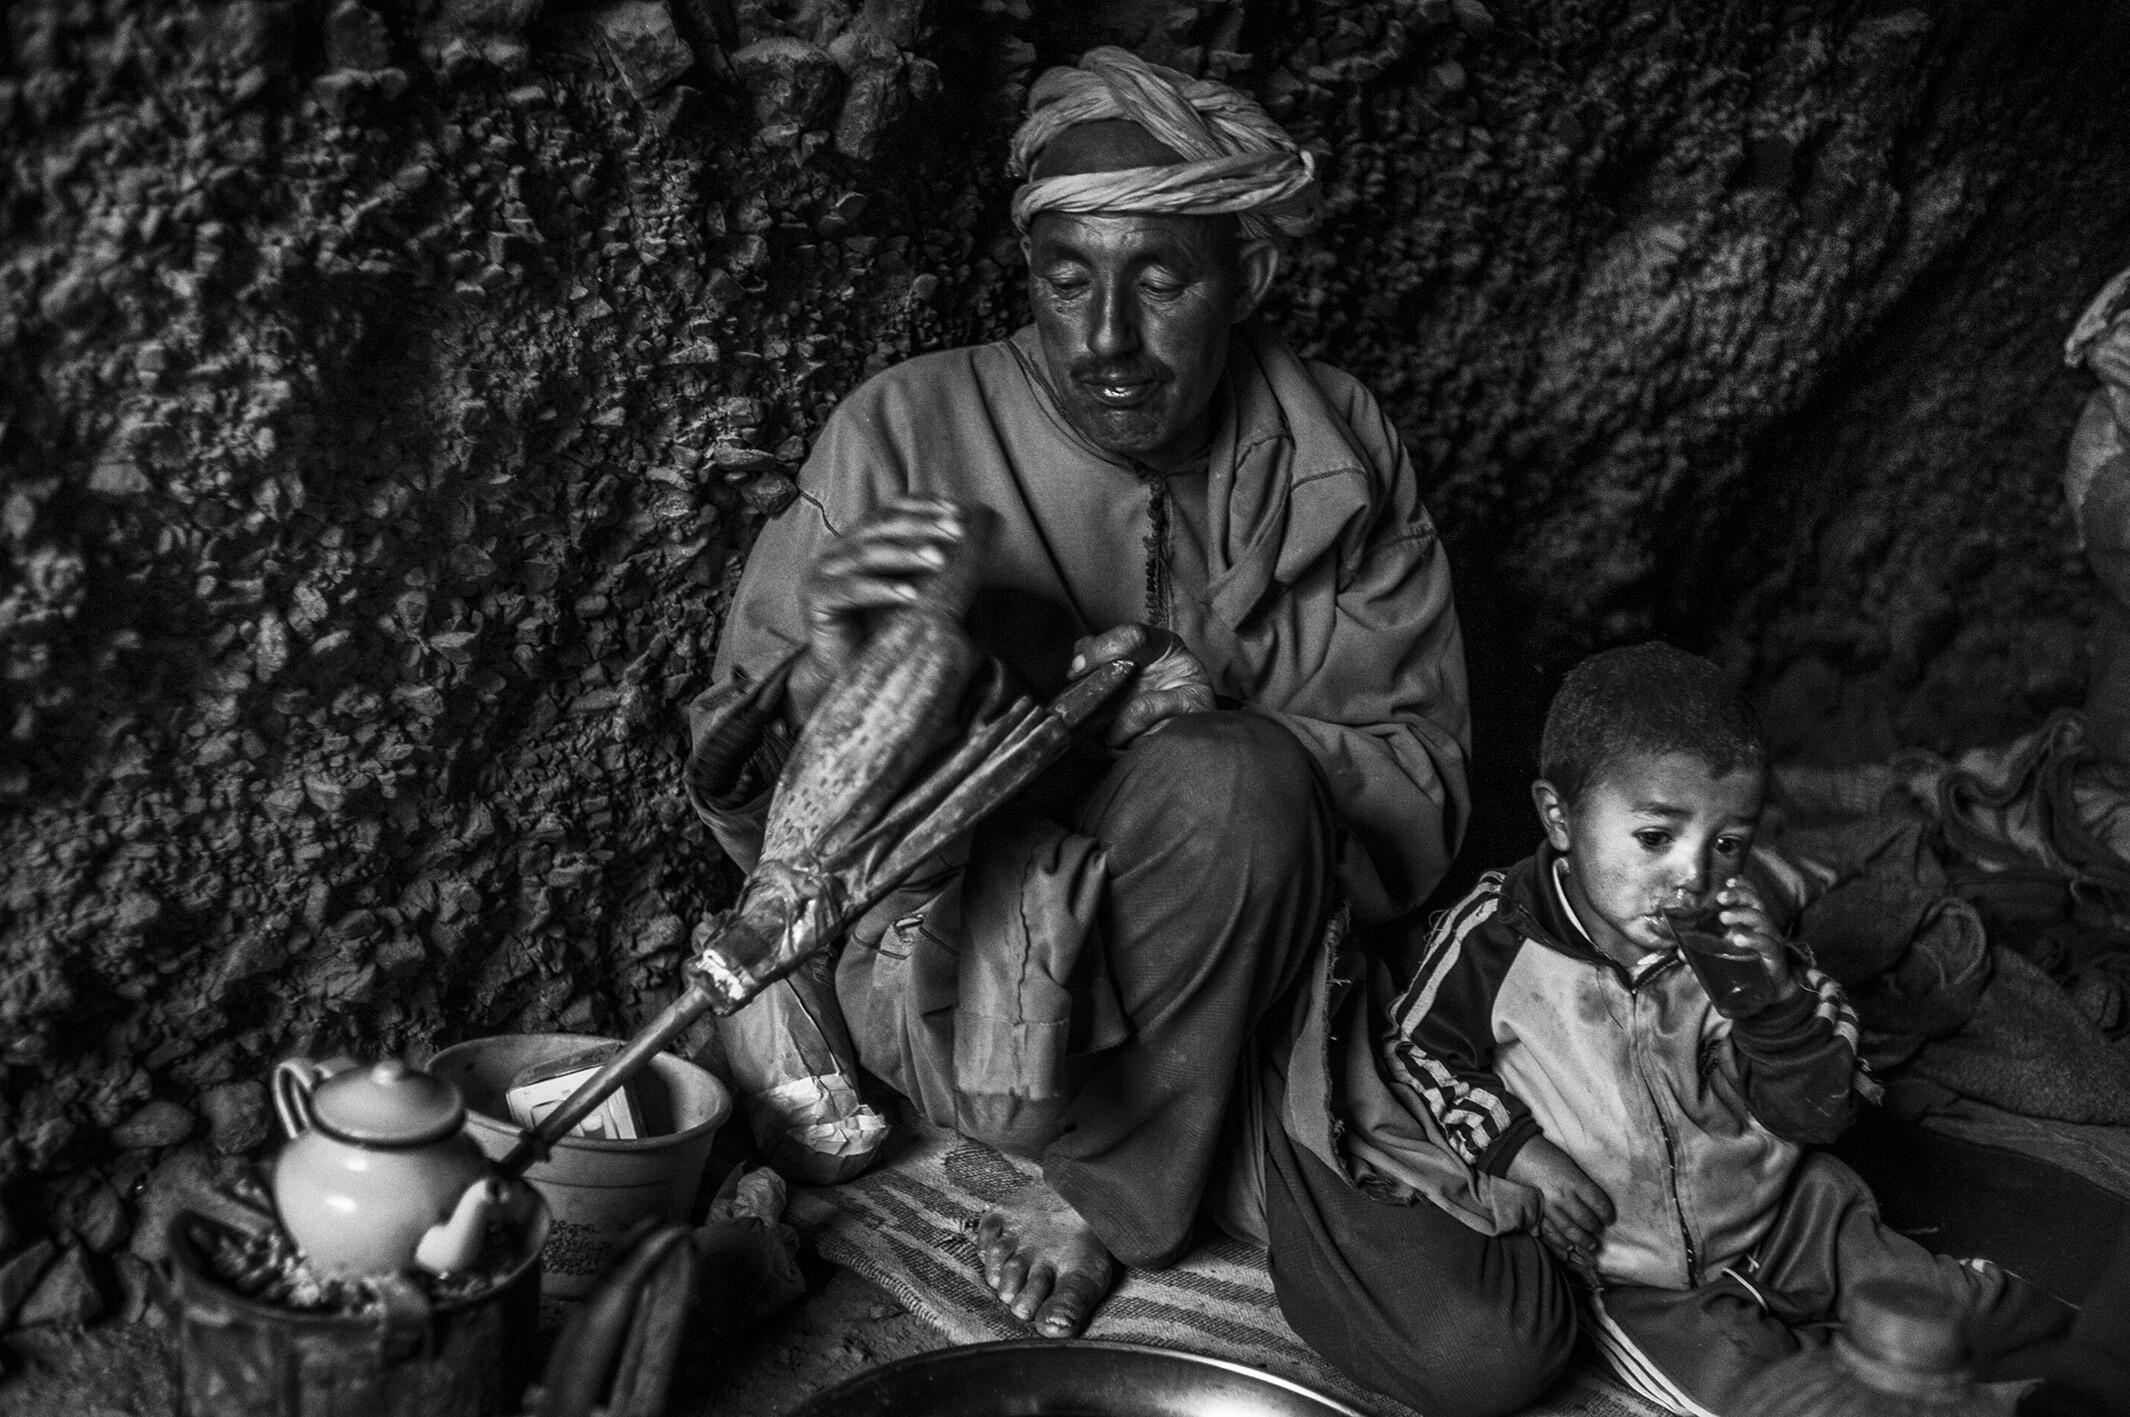 """Mohamed preparing tea before leaving his cave.  """"We are born to work, live and die."""" Tinfgam, Atlas Mountains, 2016."""